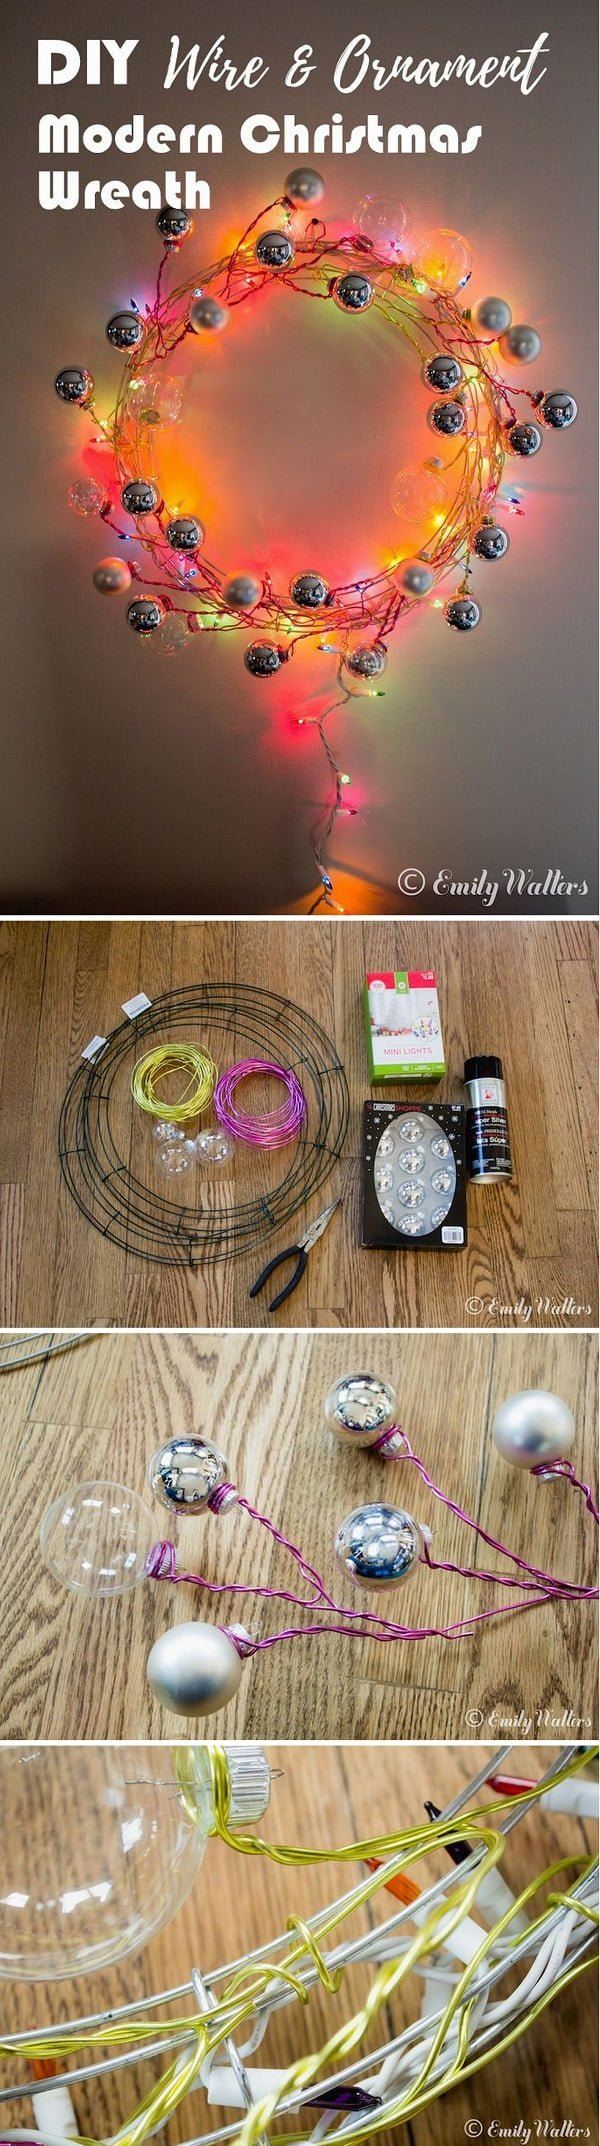 Check out this easy idea on how to make a #DIY #Christmas wire and ornament wreath #homedecor #crafts #project